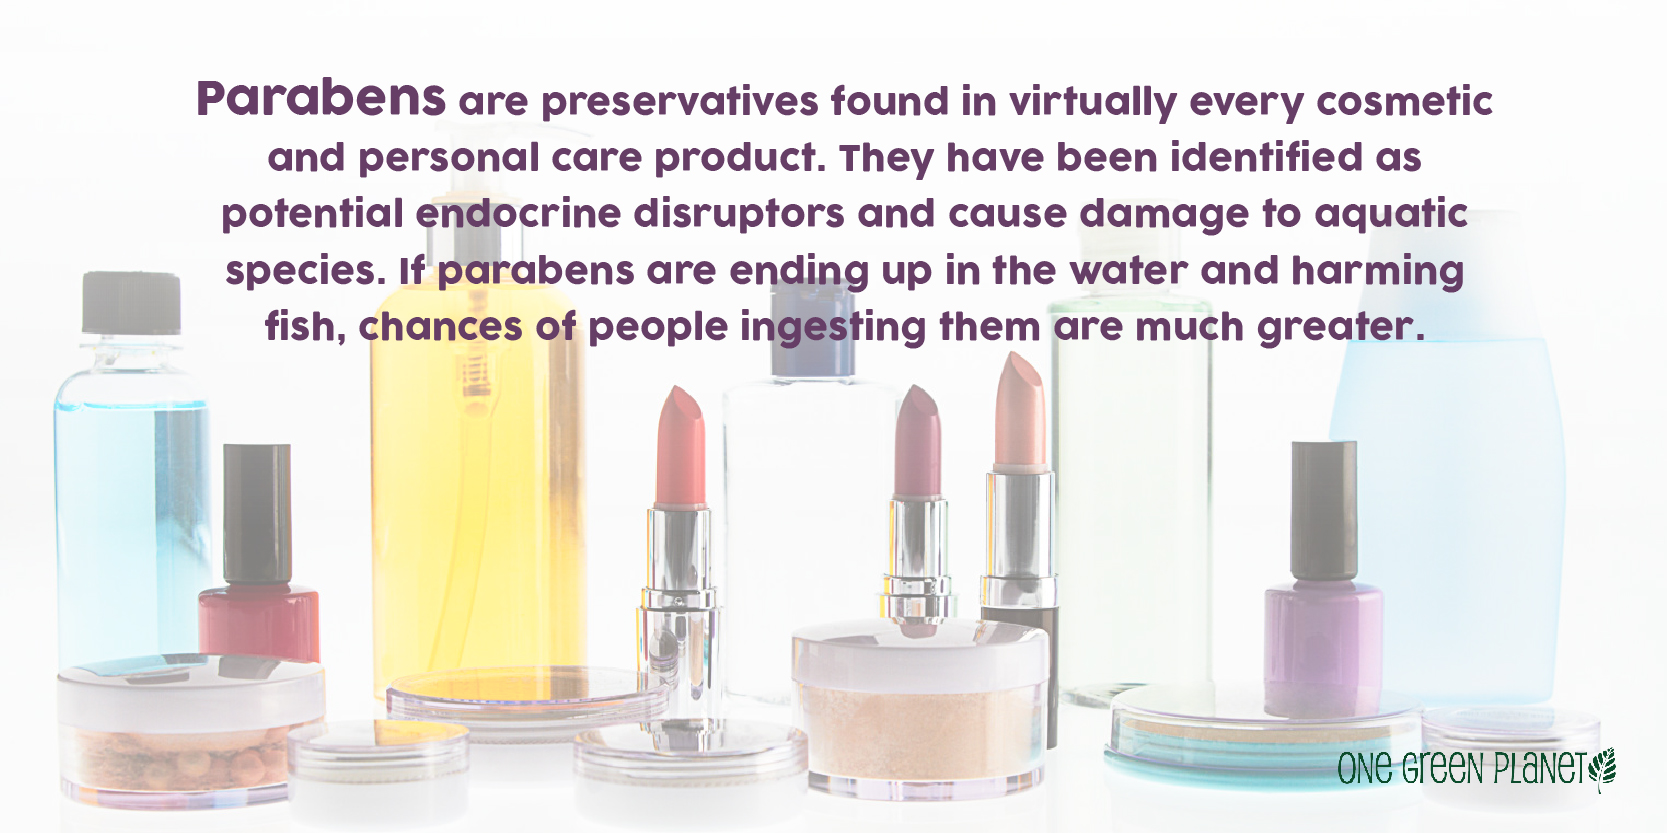 The Disturbing Environmental and Health Impact of Pouring Personal Care Products Down the Drain